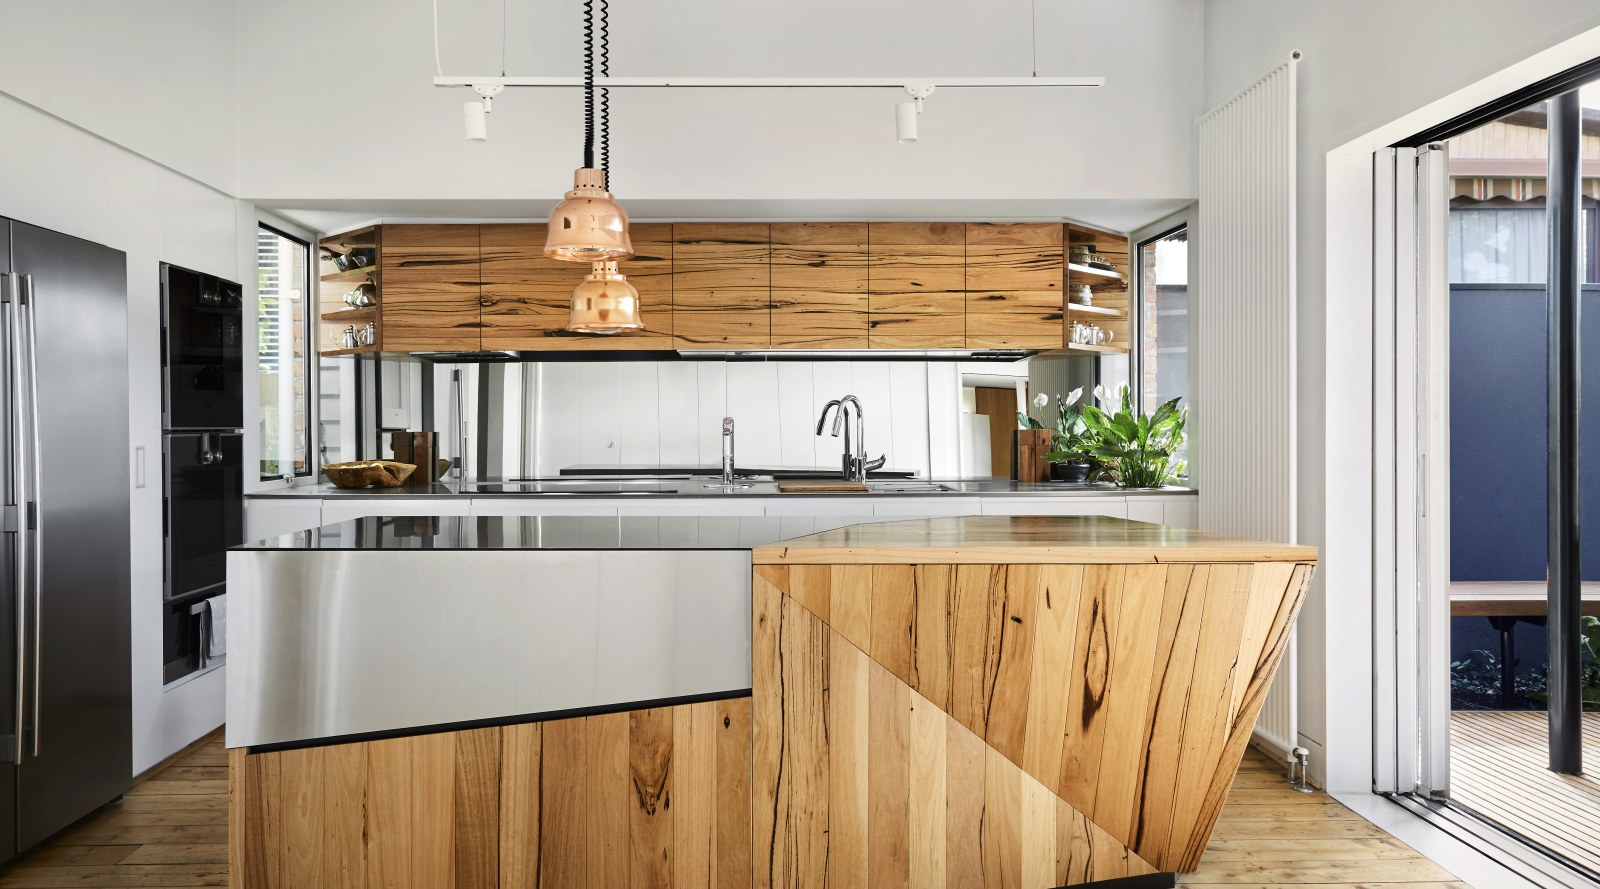 Warm Meets Semi Industrial In This Kitchen With A…   Trends With Regard To Austin Industrial Accent Mirrors (Image 28 of 30)